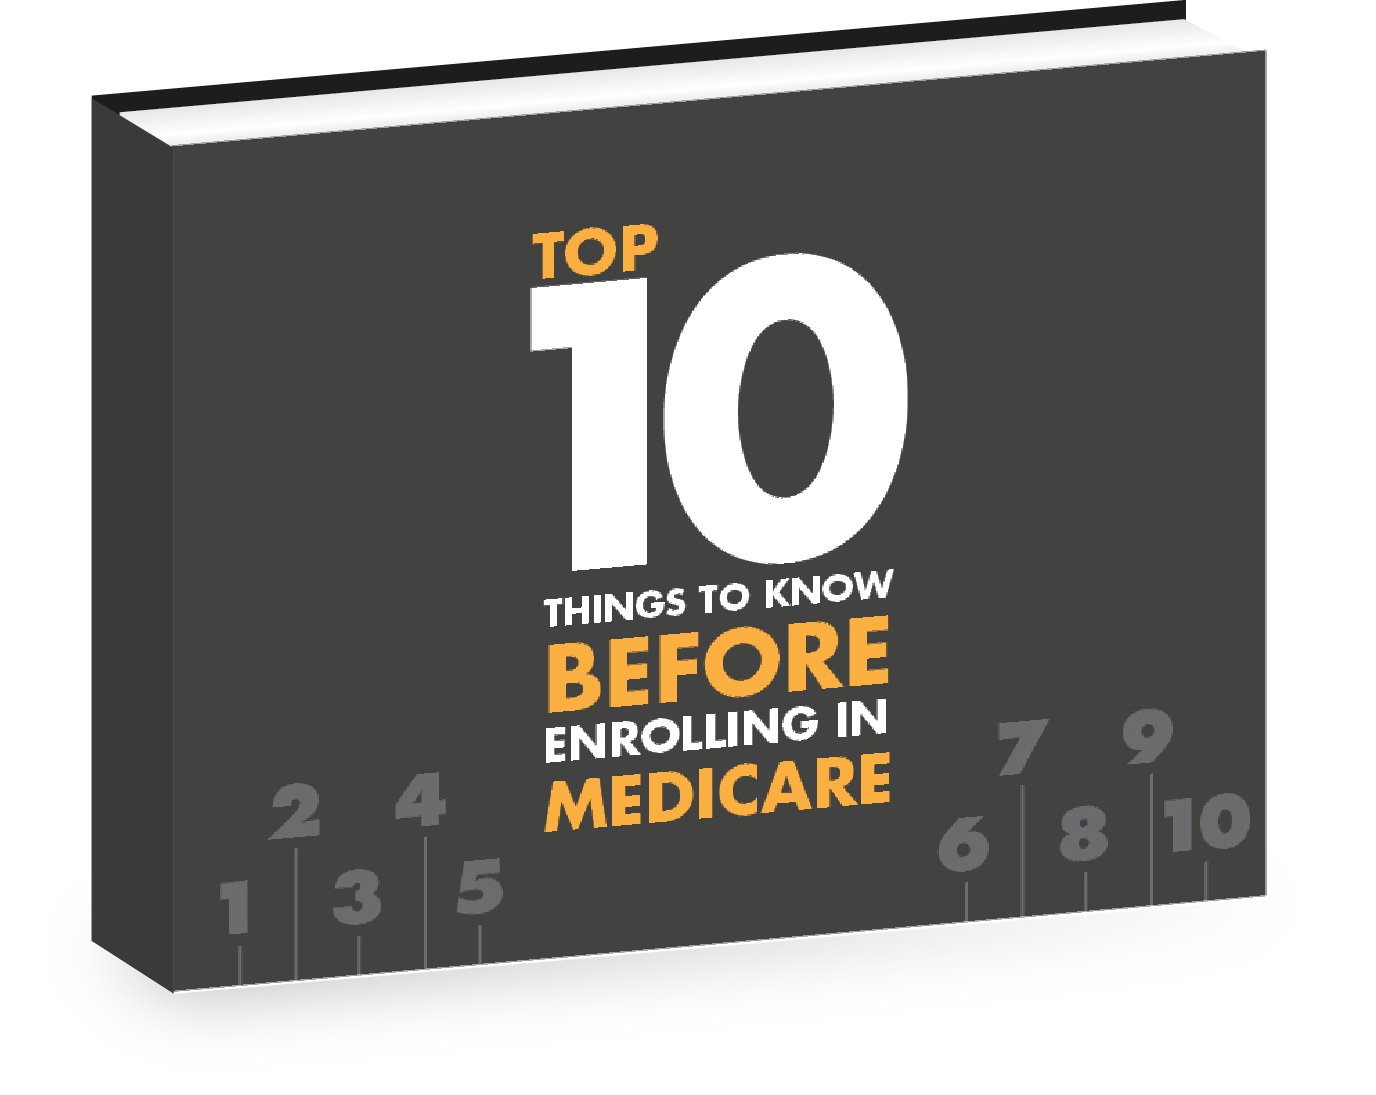 Book_Cover_10_things_to_know_before_enrolling_in_medicare.jpg